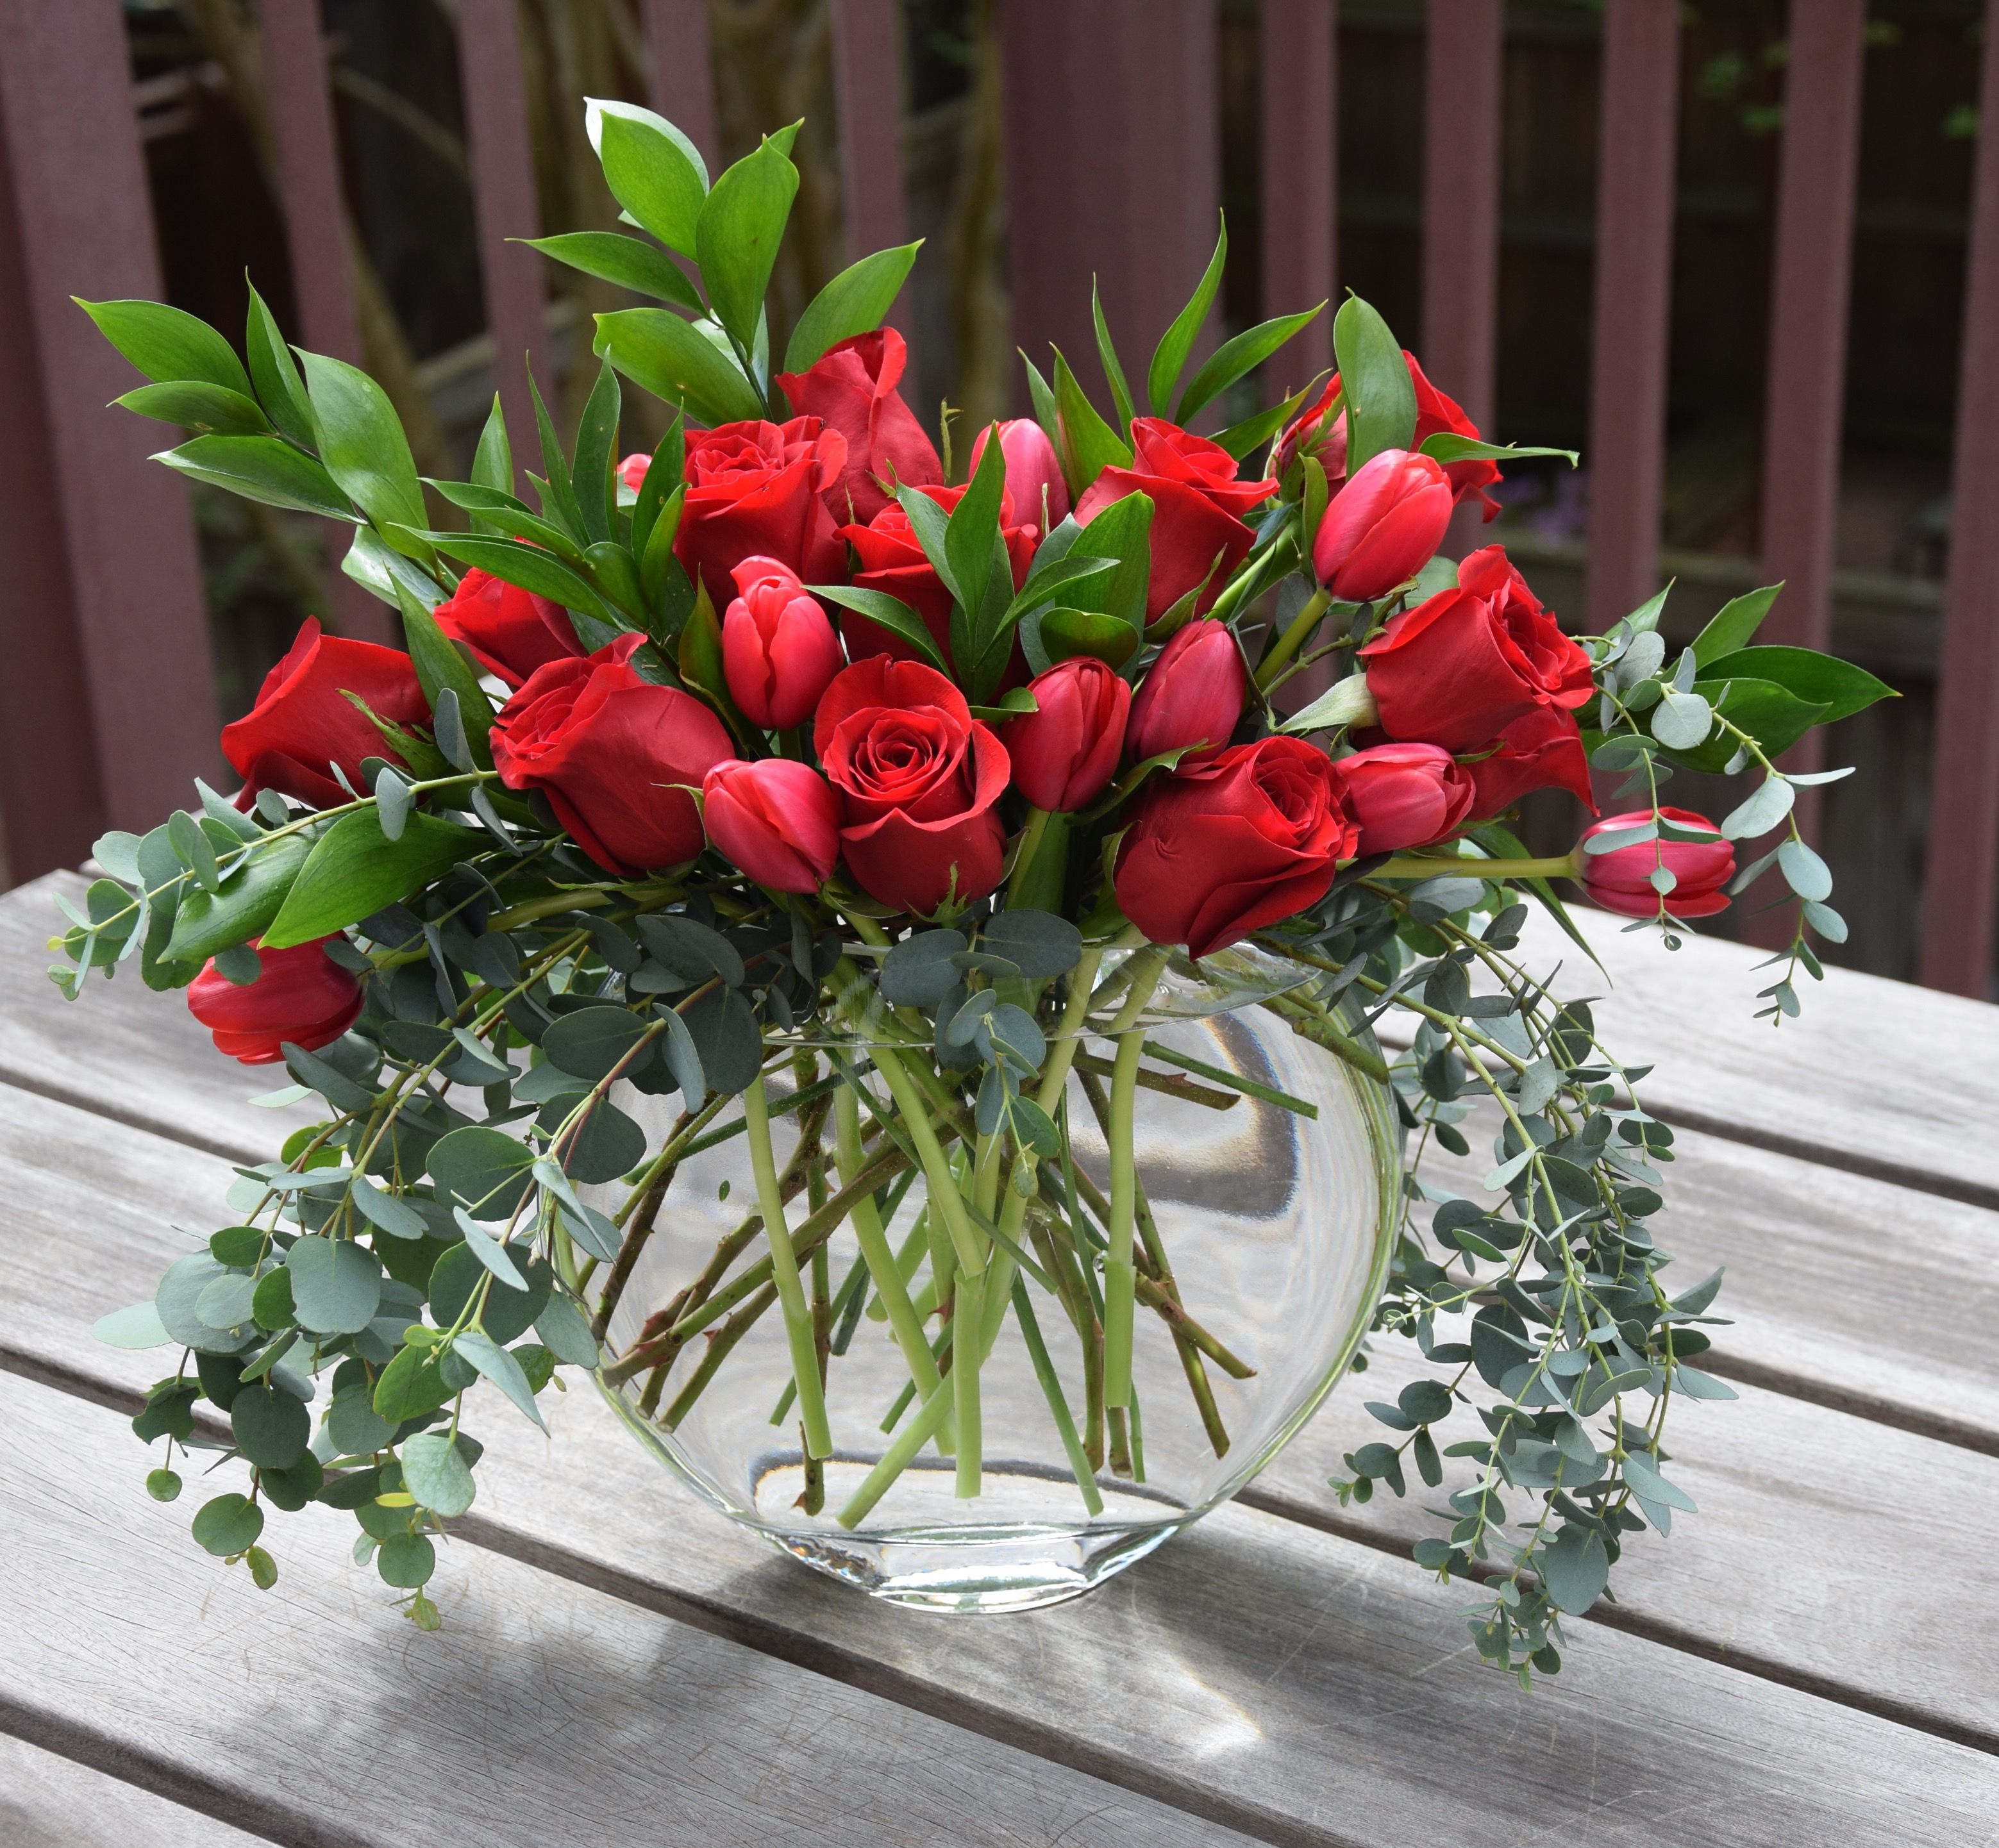 Mother S Day Flower Arrangement With Red Roses And Red Tulips Eucalyptus And Ruscus Leav Fresh Flowers Arrangements Tulips Arrangement Red Flower Arrangements